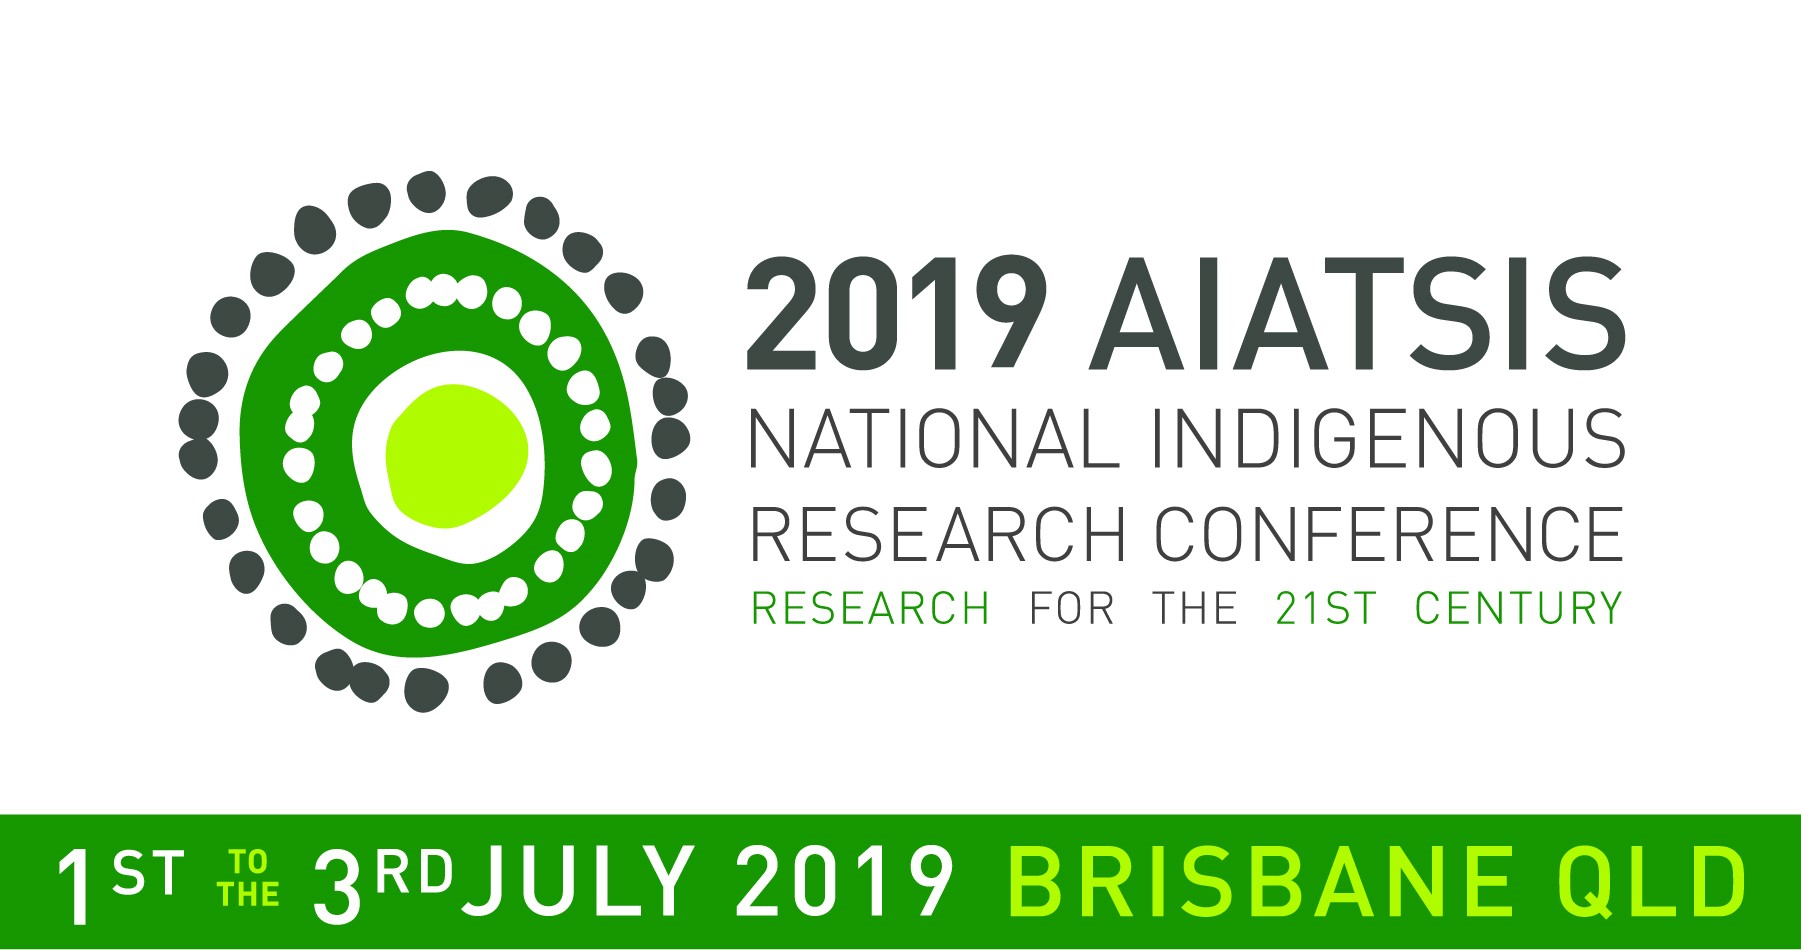 ANIRC2019 - Speakers